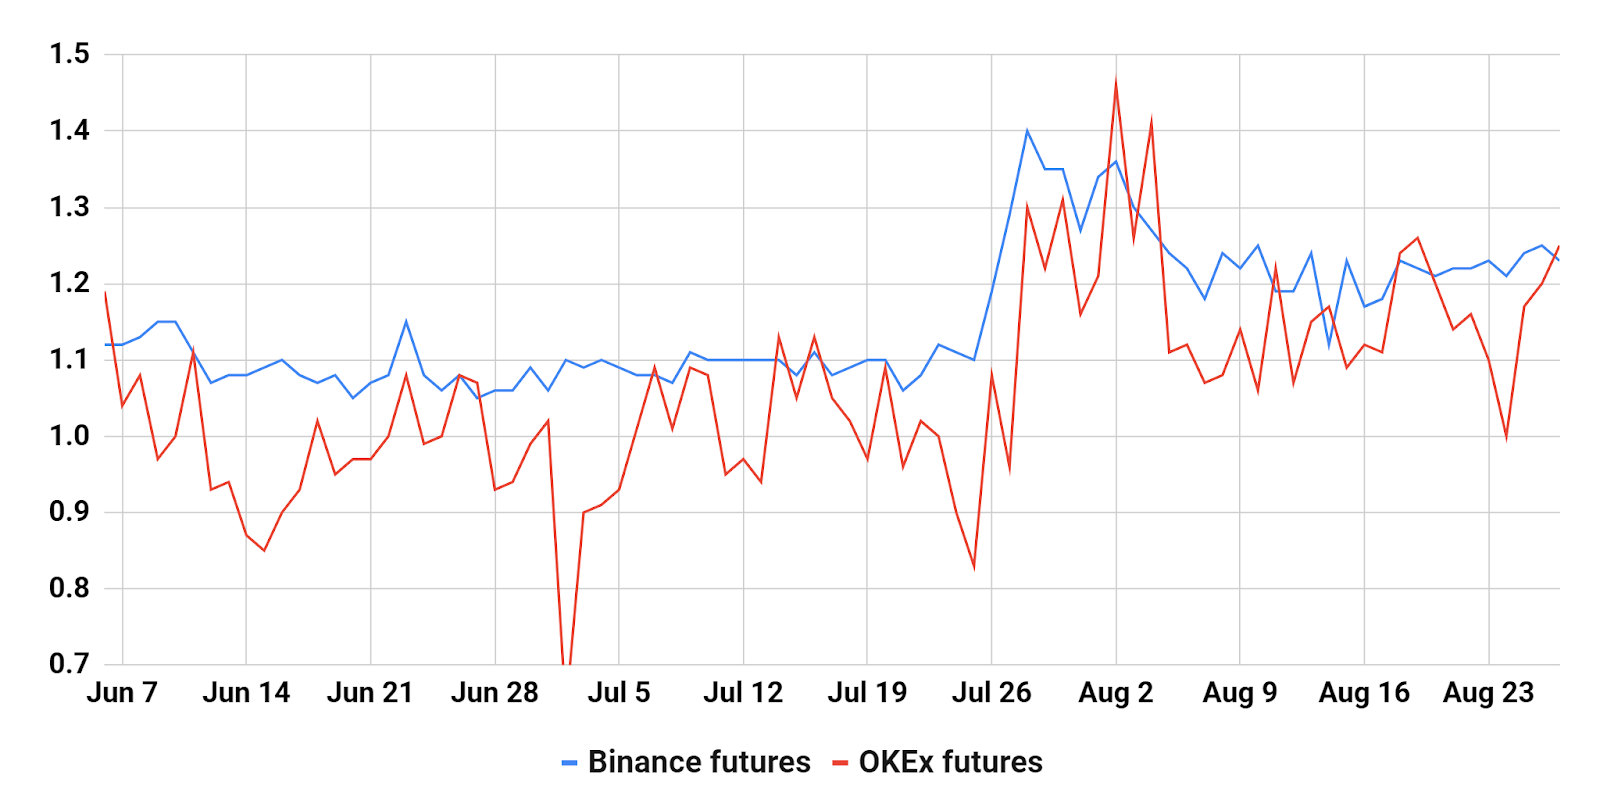 Top traders longs/shorts. Source: Binance, OKEx, and Cointelegraph